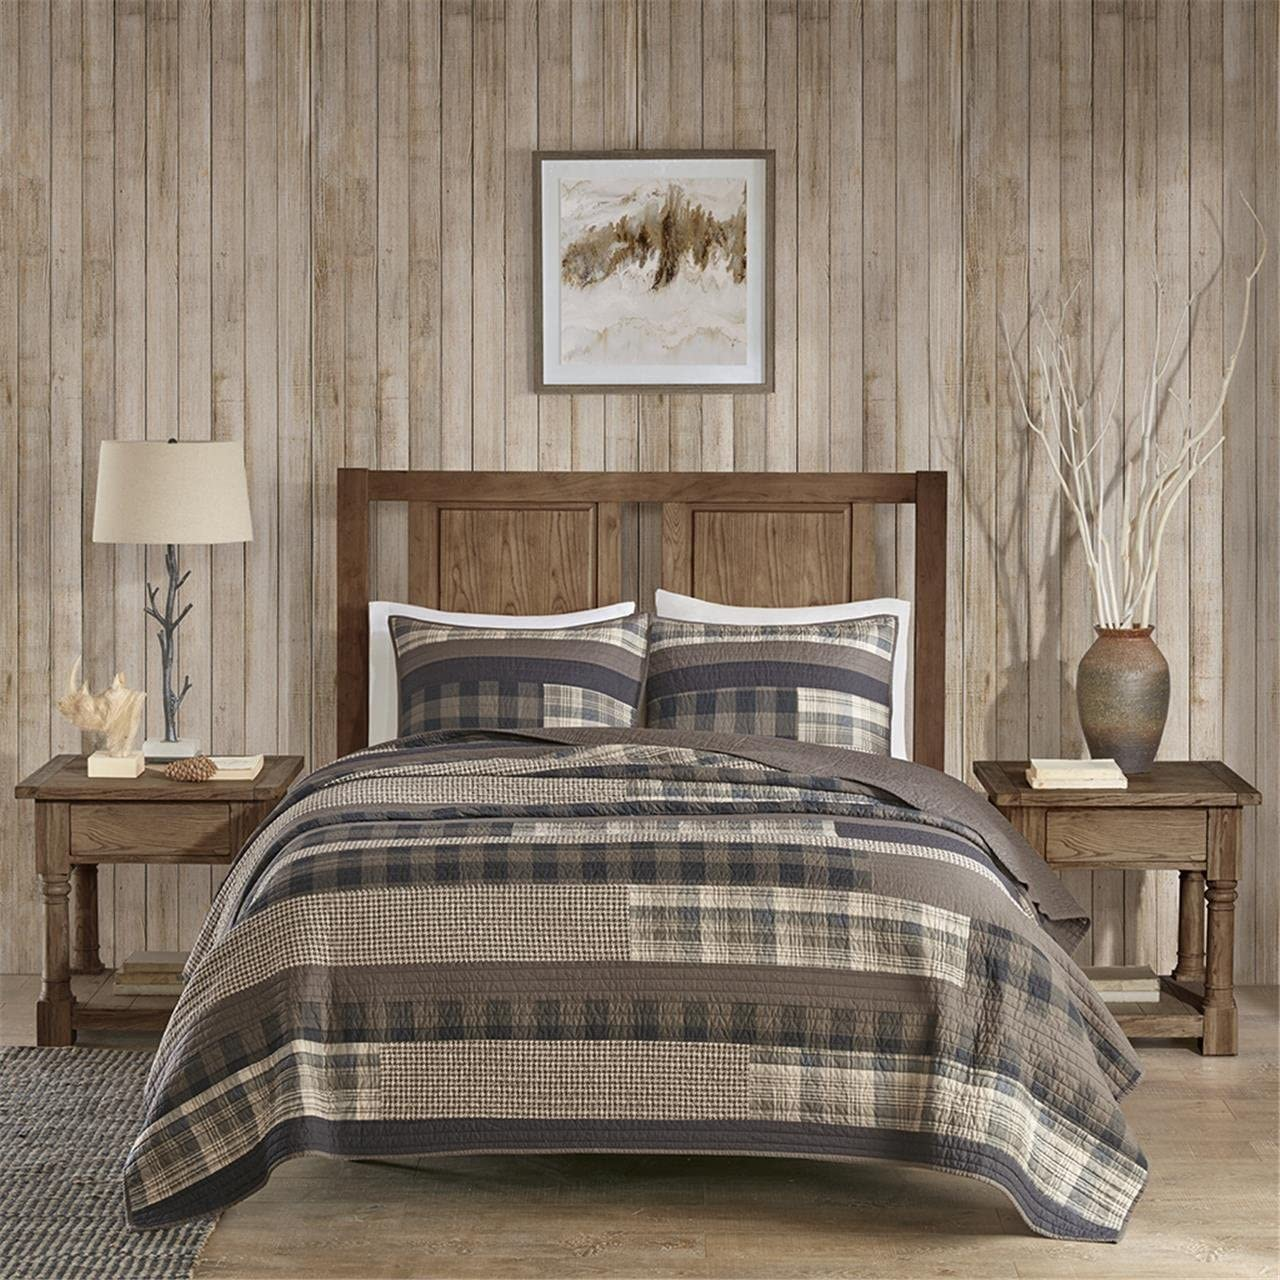 "Woolrich 100% Cotton Quilt Reversible Plaid Cabin Lifestyle Design All Season, Breathable Coverlet Bedspread Bedding Set, Matching Shams, King/Cal King(110""x96""), Winter Plains, Stripe Taupe, 3 Piece"